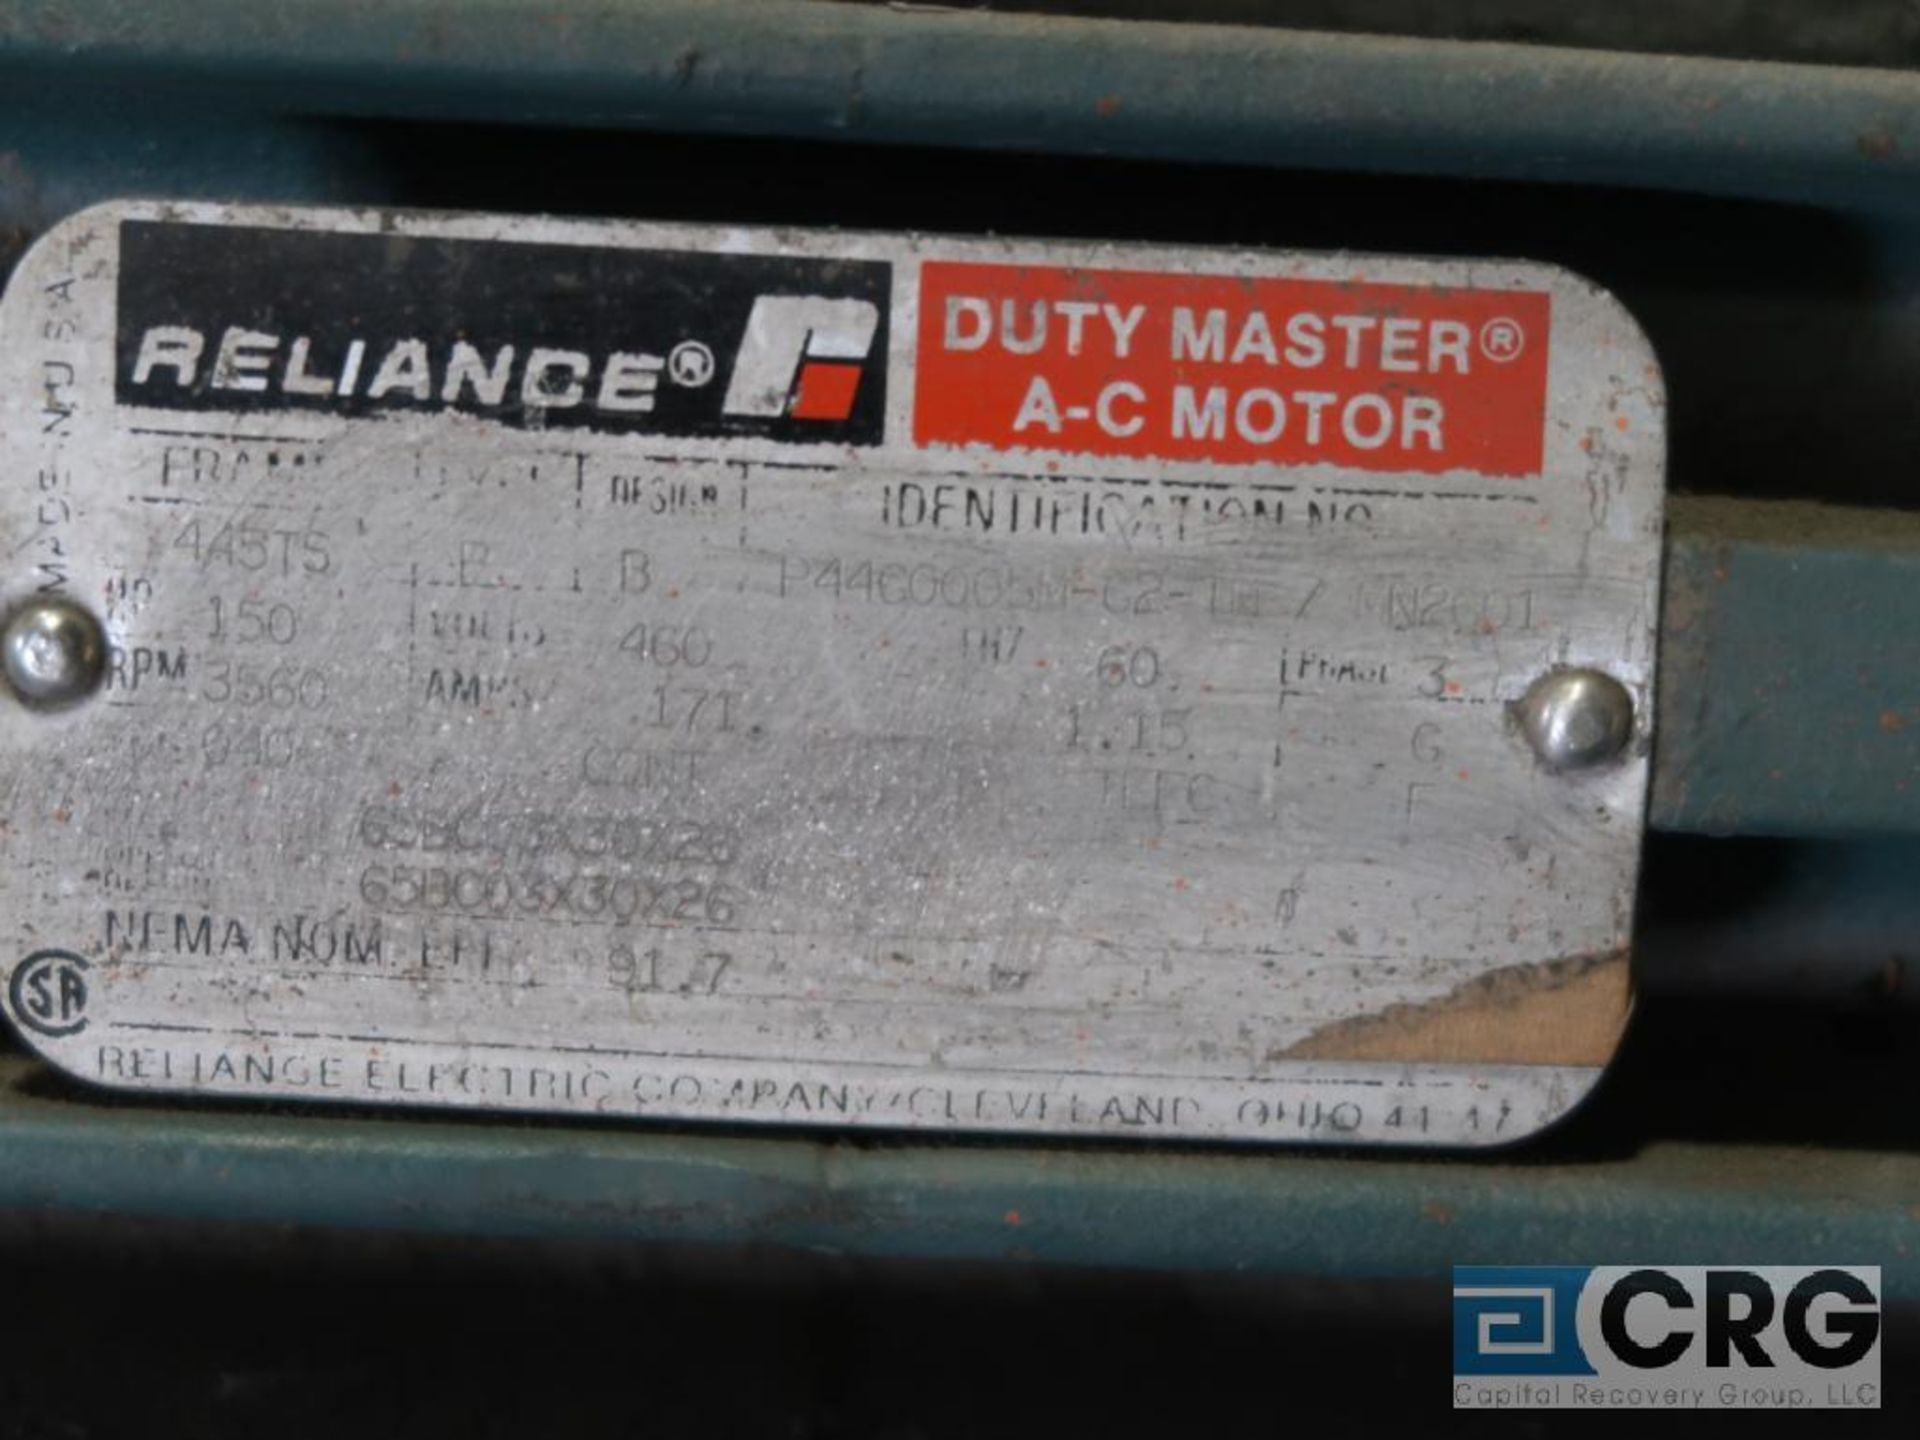 Reliance Duty Master A-C motor, 150 HP, 3,570 RPMs, 460 volt, 3ph., 445TS frame (Finish Building) - Image 2 of 2